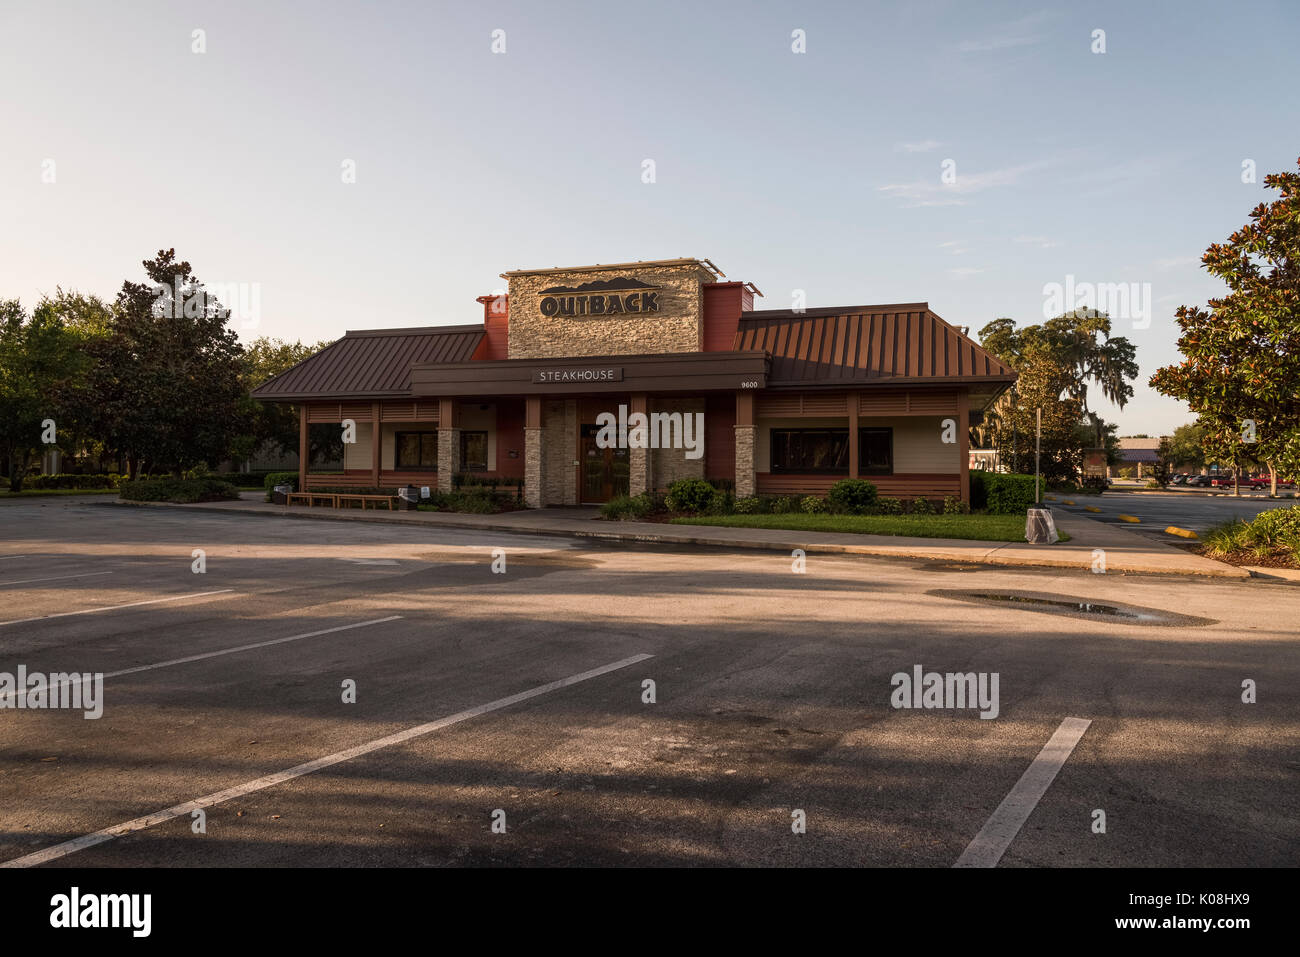 American Seafood Restaurant Chain Stock Photos & American Seafood ...